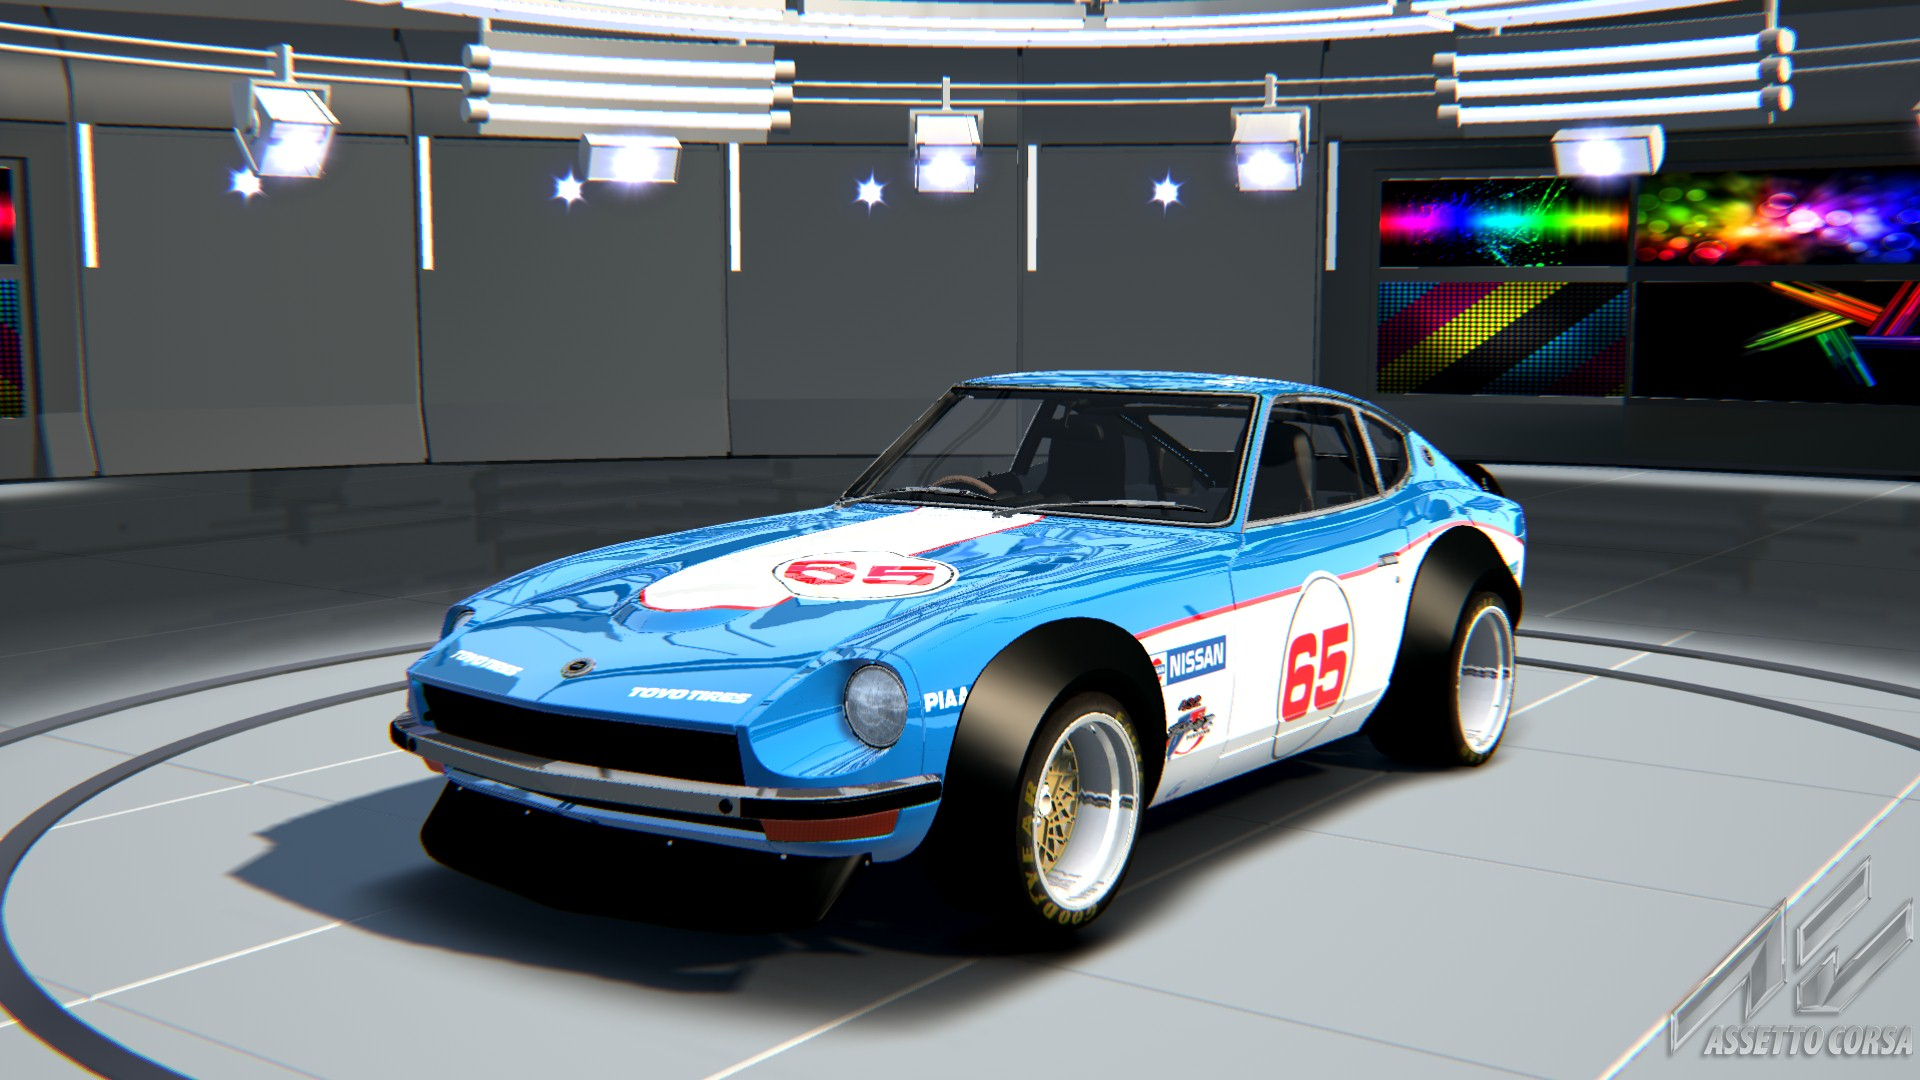 Nissan Fairlady Z >> Nissan Fairlady Z 432 RB - Nissan - Car Download - Assetto Corsa Database